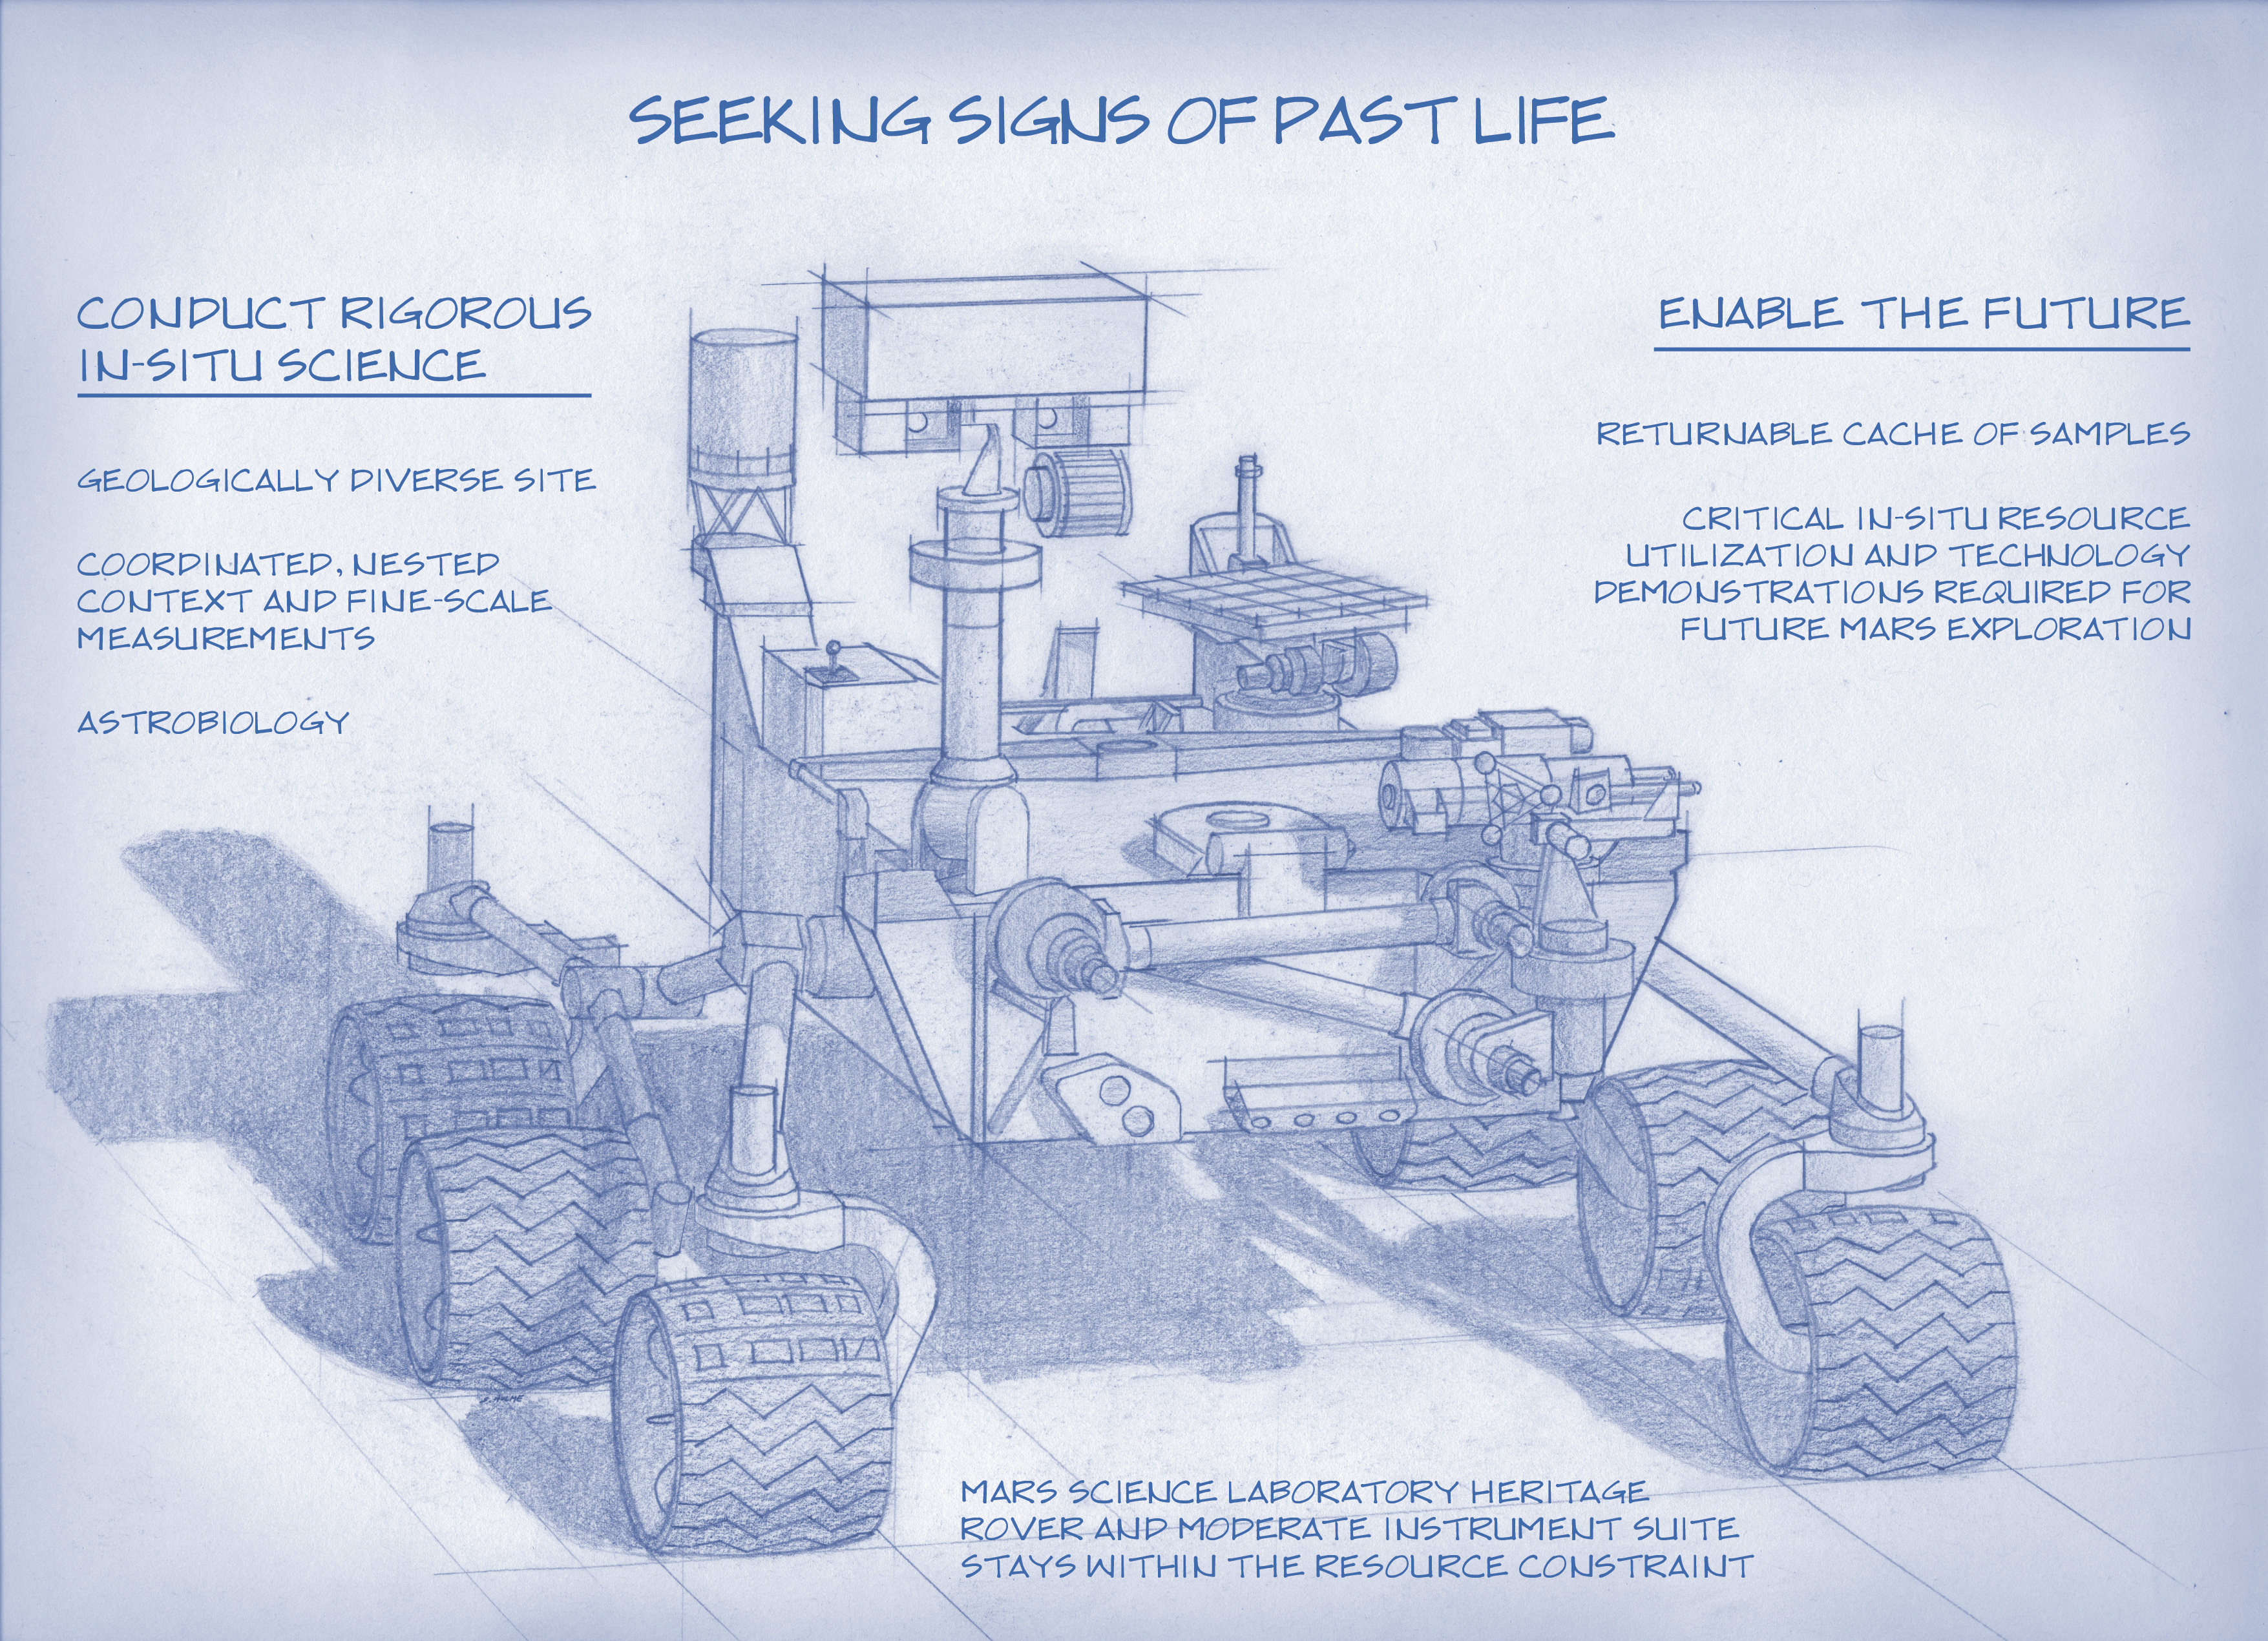 mars 2020 rover mission goals - photo #26